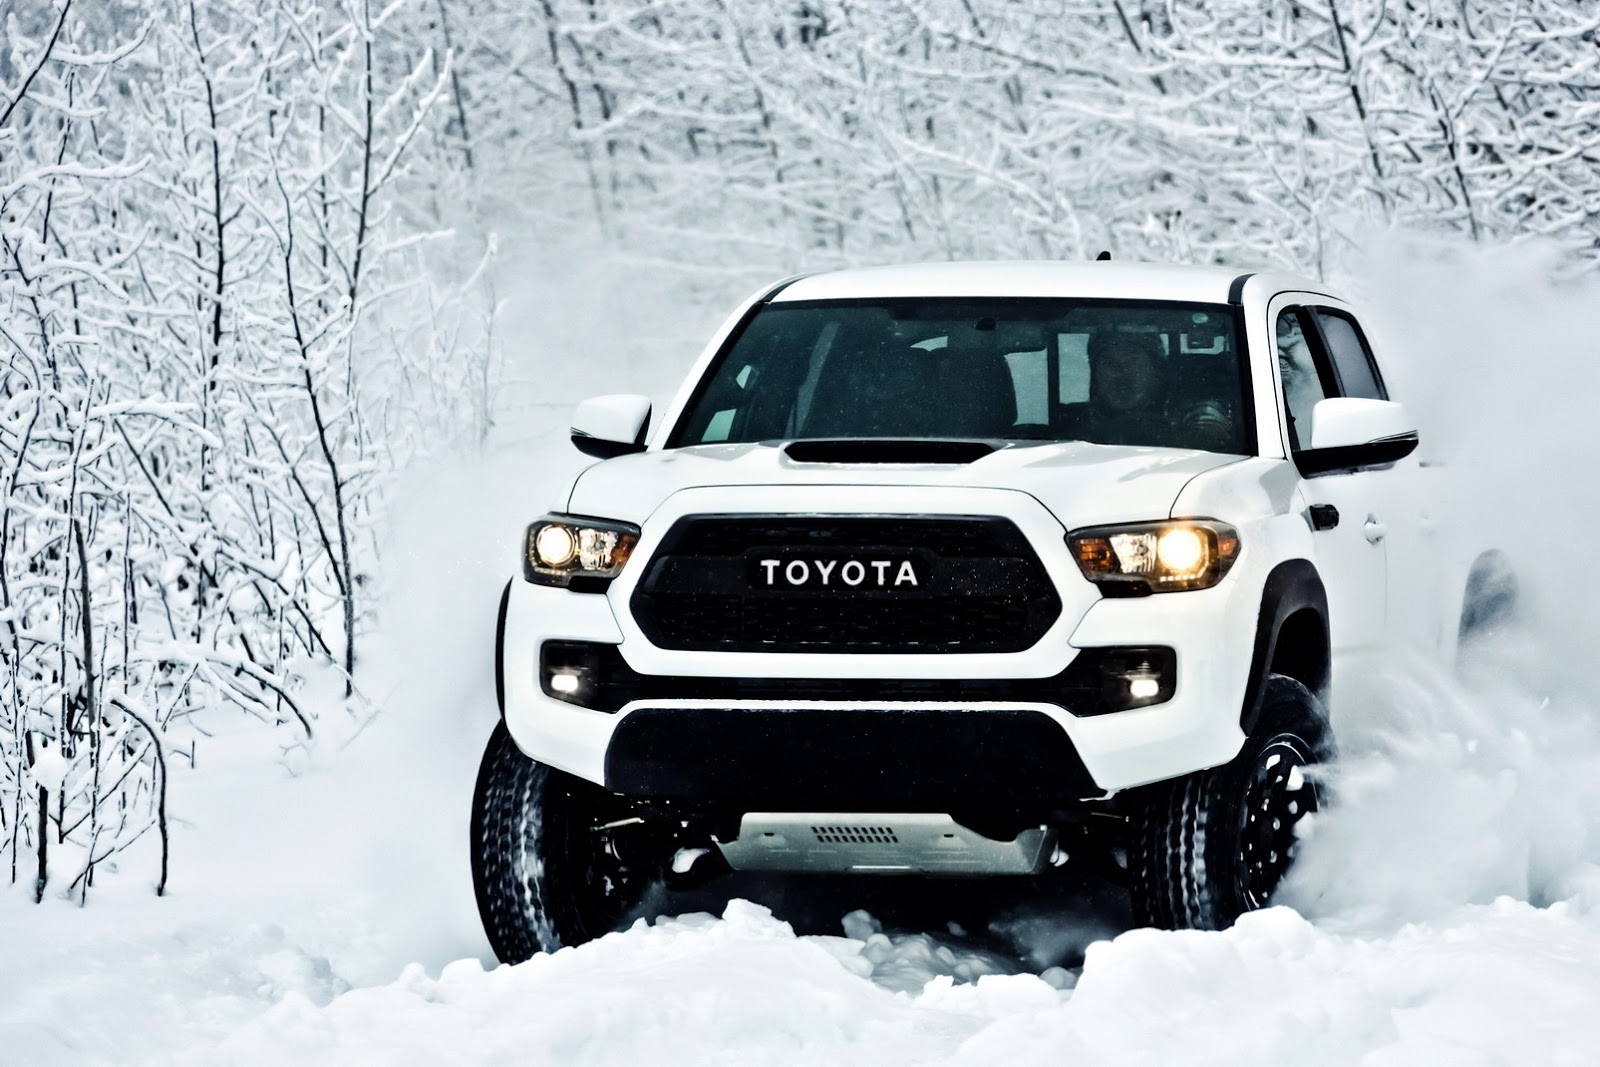 2017-toyota-tacoma-trd-pro-is-a-small-but-extreme-off-road-pickup_11